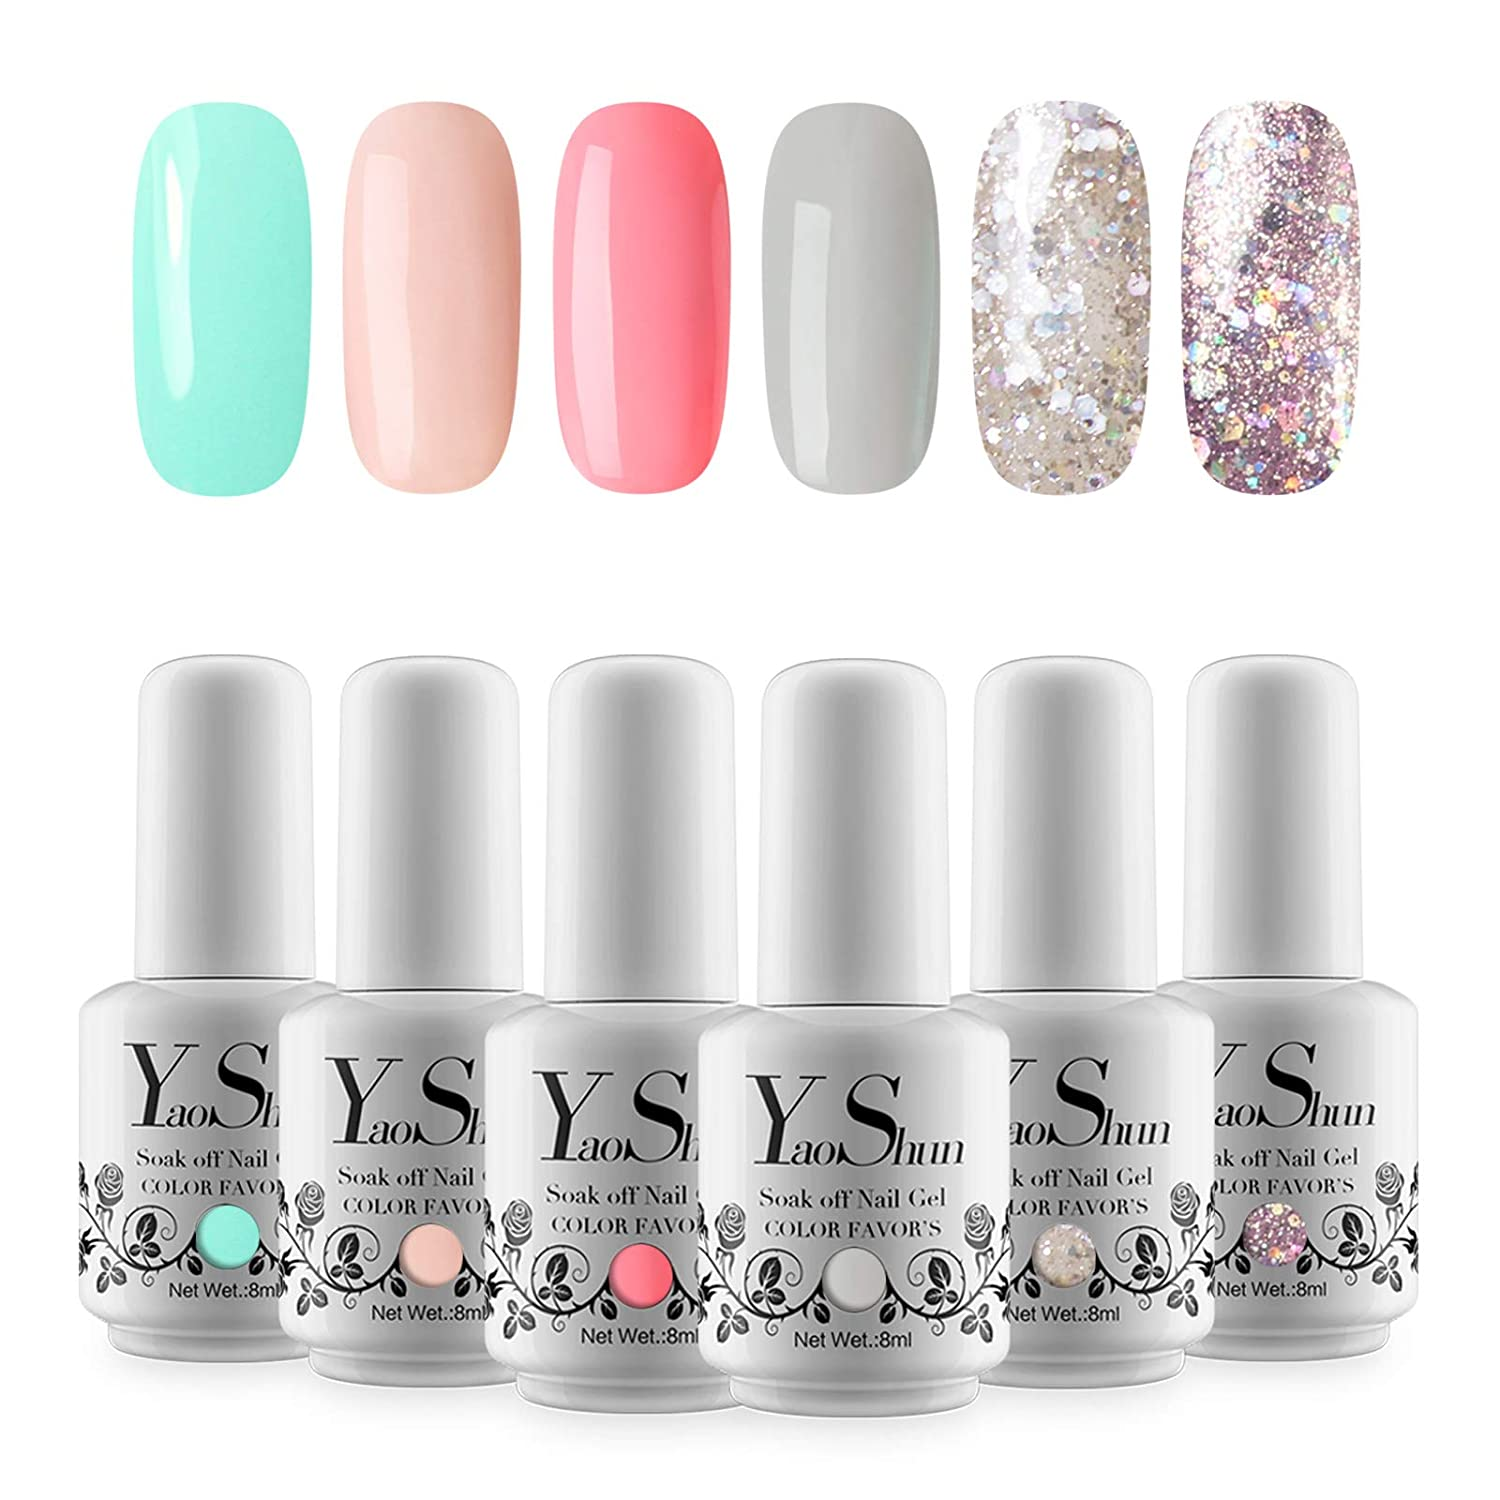 Amazon.com: YaoShun Gel Polish - Soak Off Nail Gel UV Led Gel Nail ...